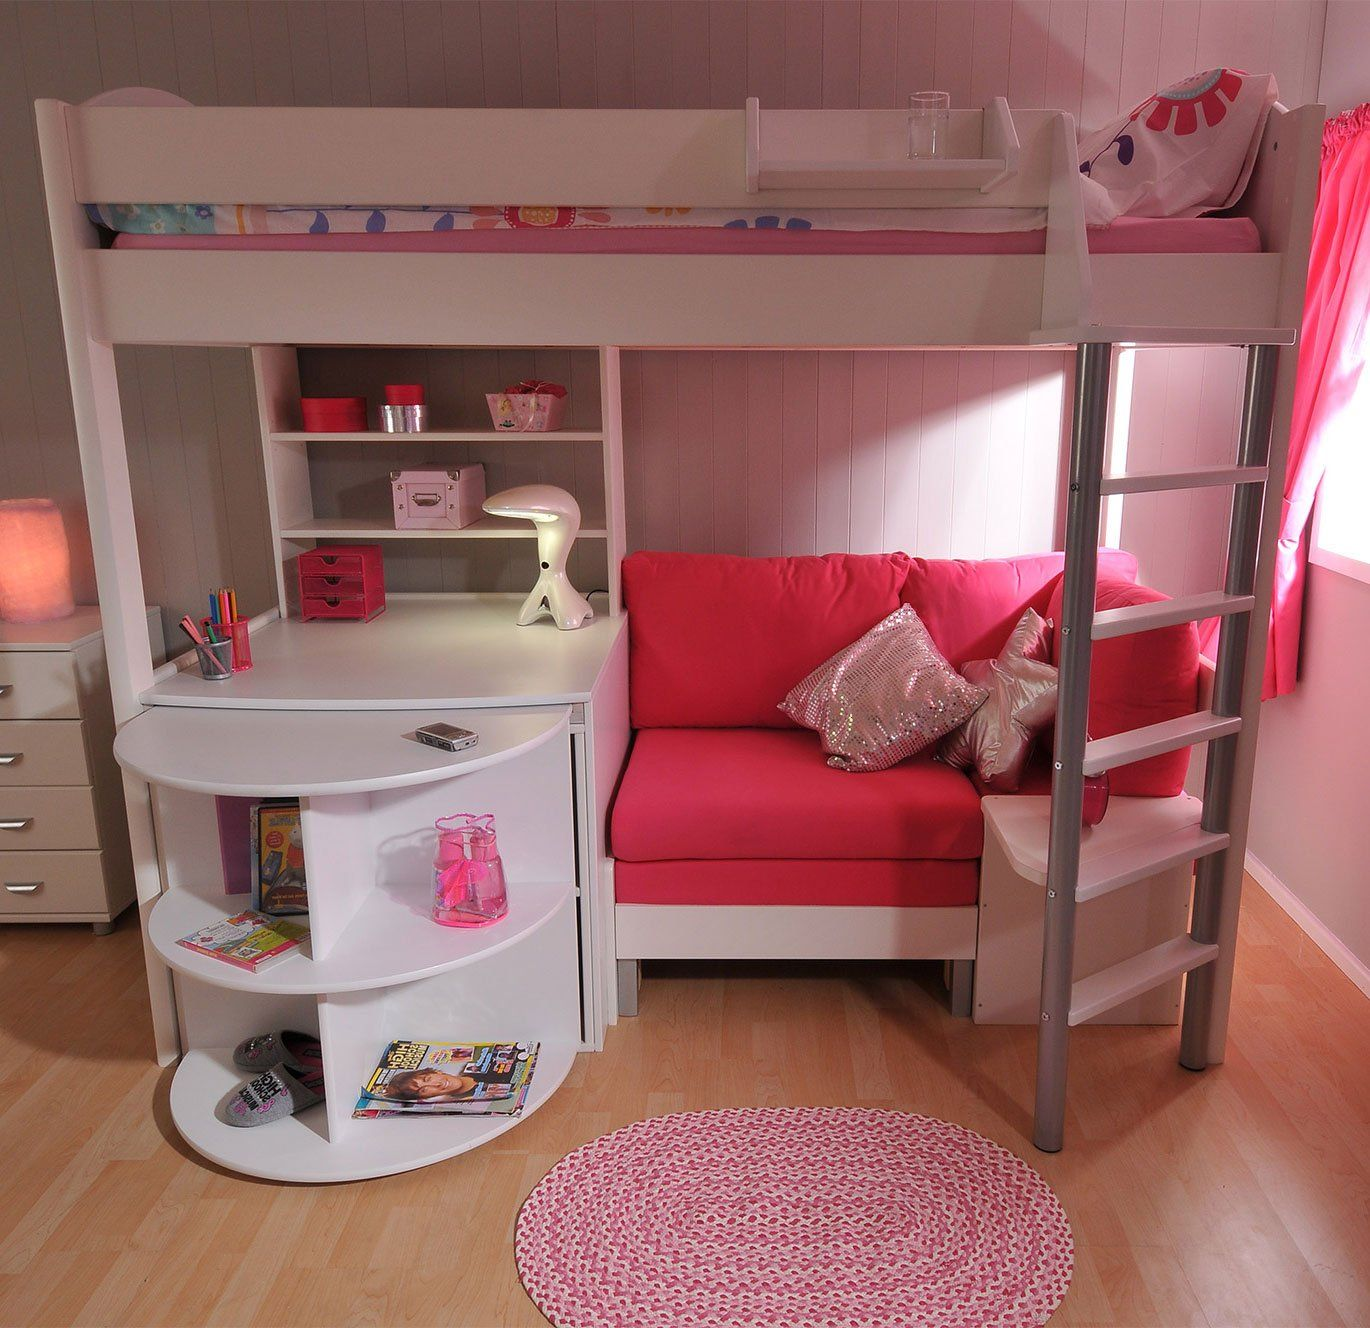 Hochbett Mit Sofa Stompa Casa 4 White Loft Bed With Desk And Pink Sofa Bed